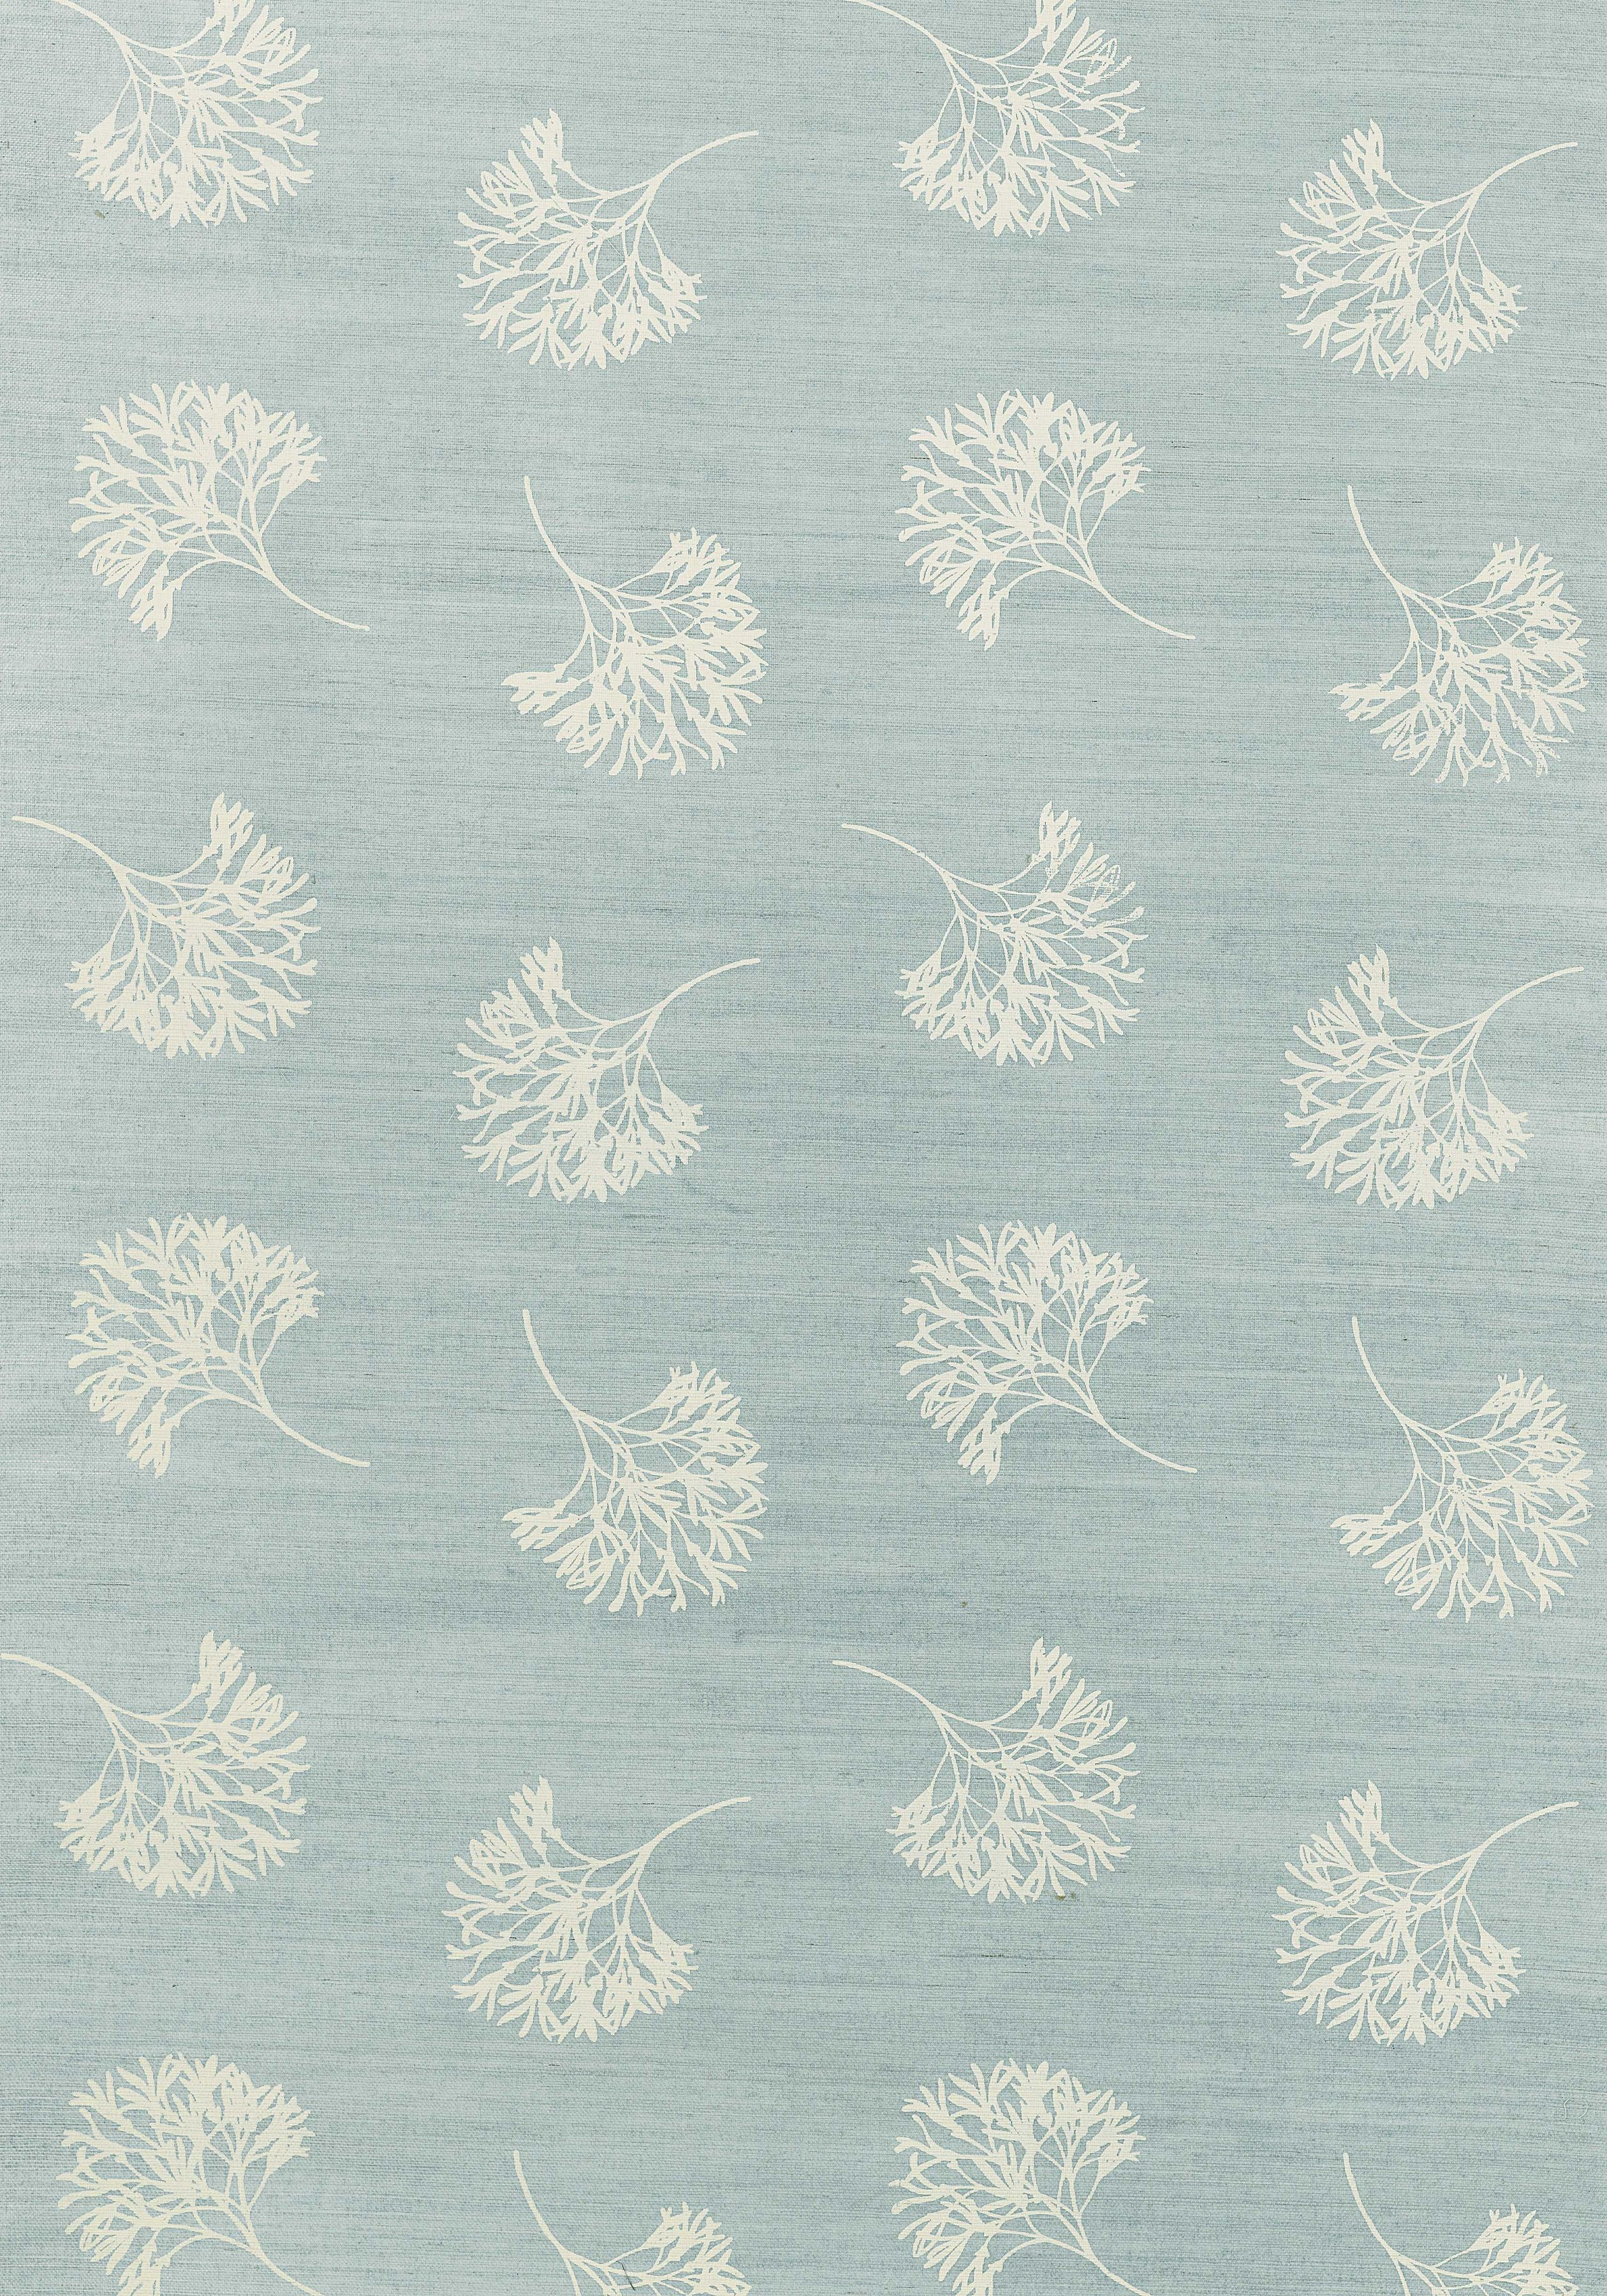 ANDROS Cream on Aqua T3626 Collection Grasscloth Resource 2 2520x3600